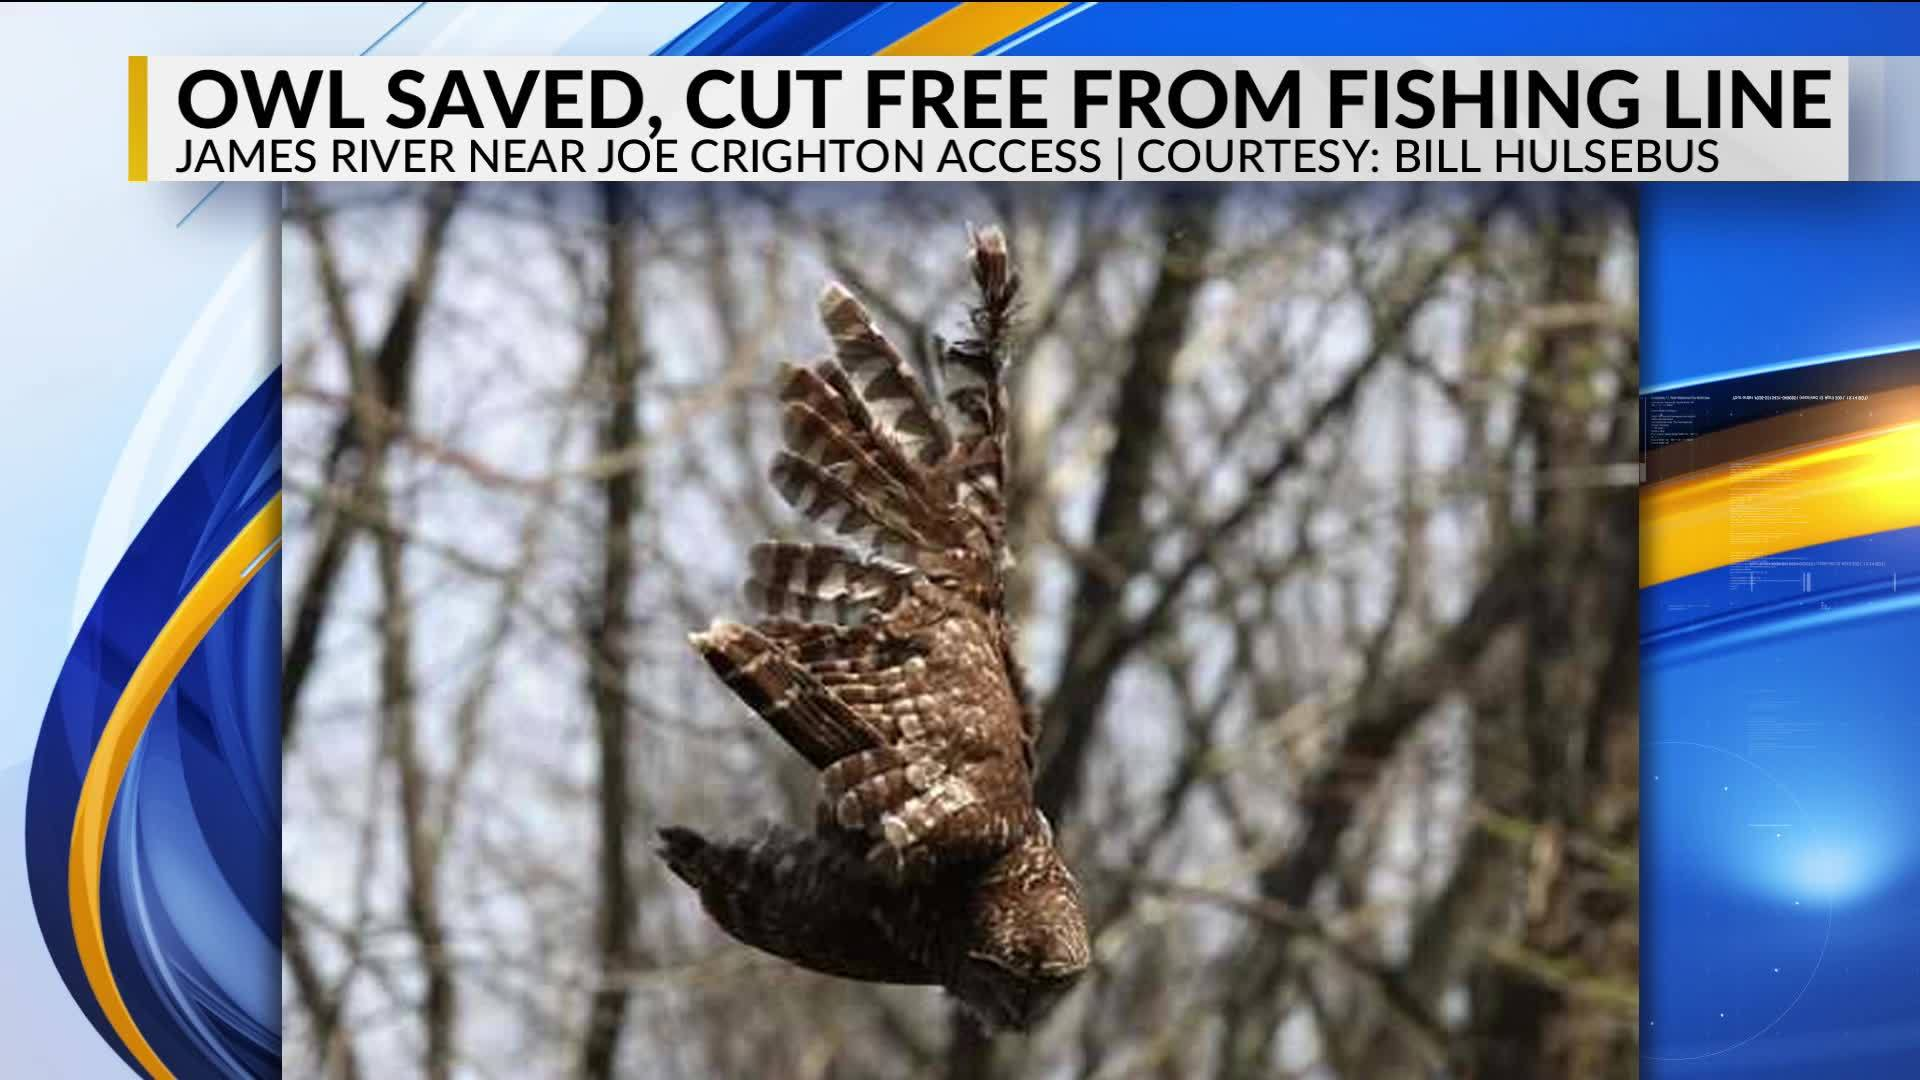 Owl_rescued_from_fishing_line_set_to_be__8_20190424223025